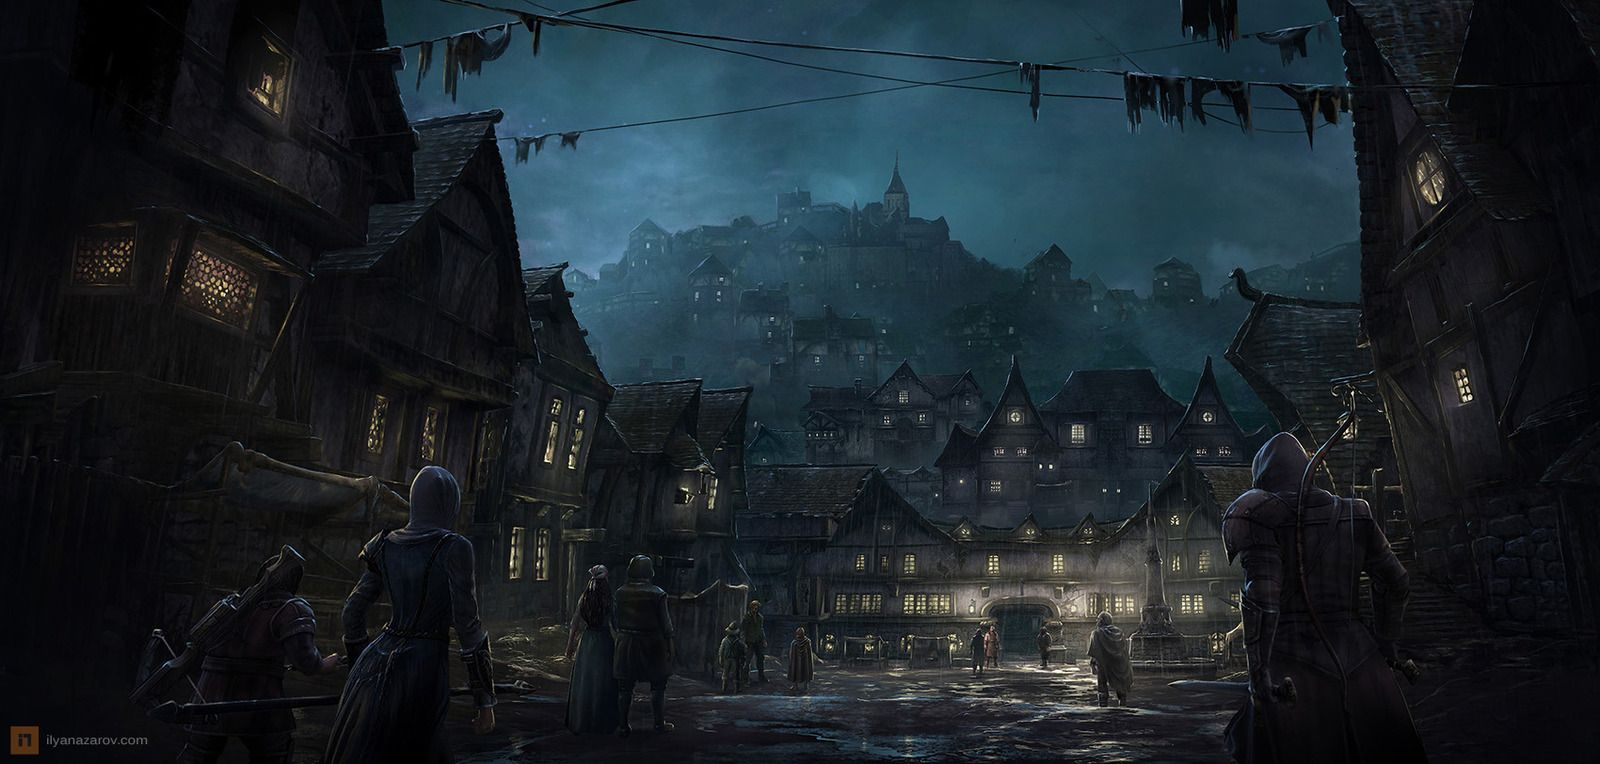 Fantasy Medieval Town Gallery for fantasy town art ...